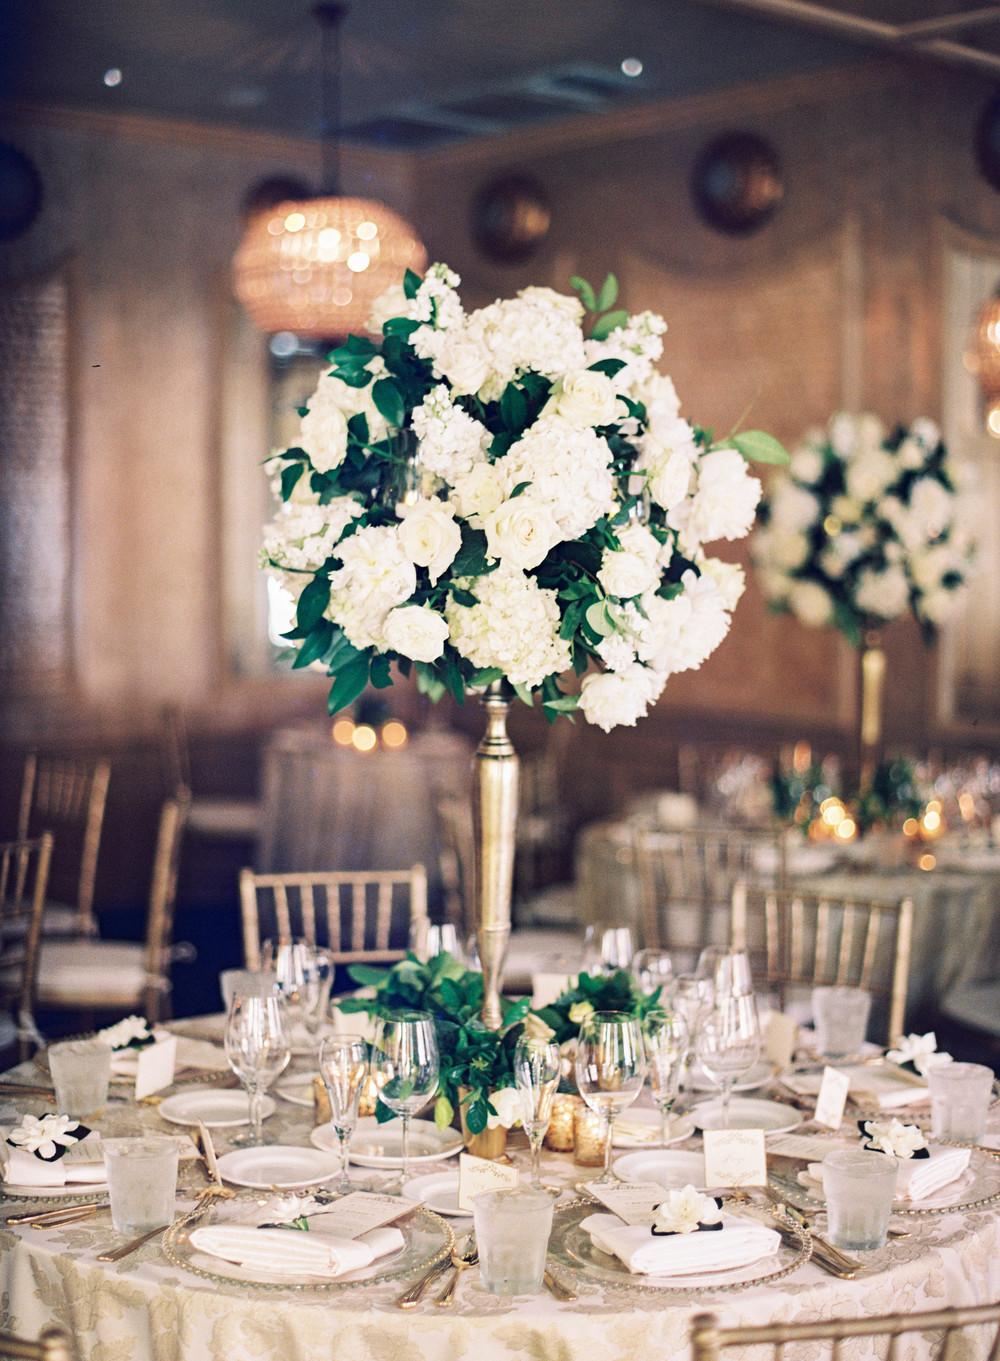 sapphireevents.com | Sapphire Events New Orleans | Luxury Wedding Planning and Design | Marissa Lambert Photography